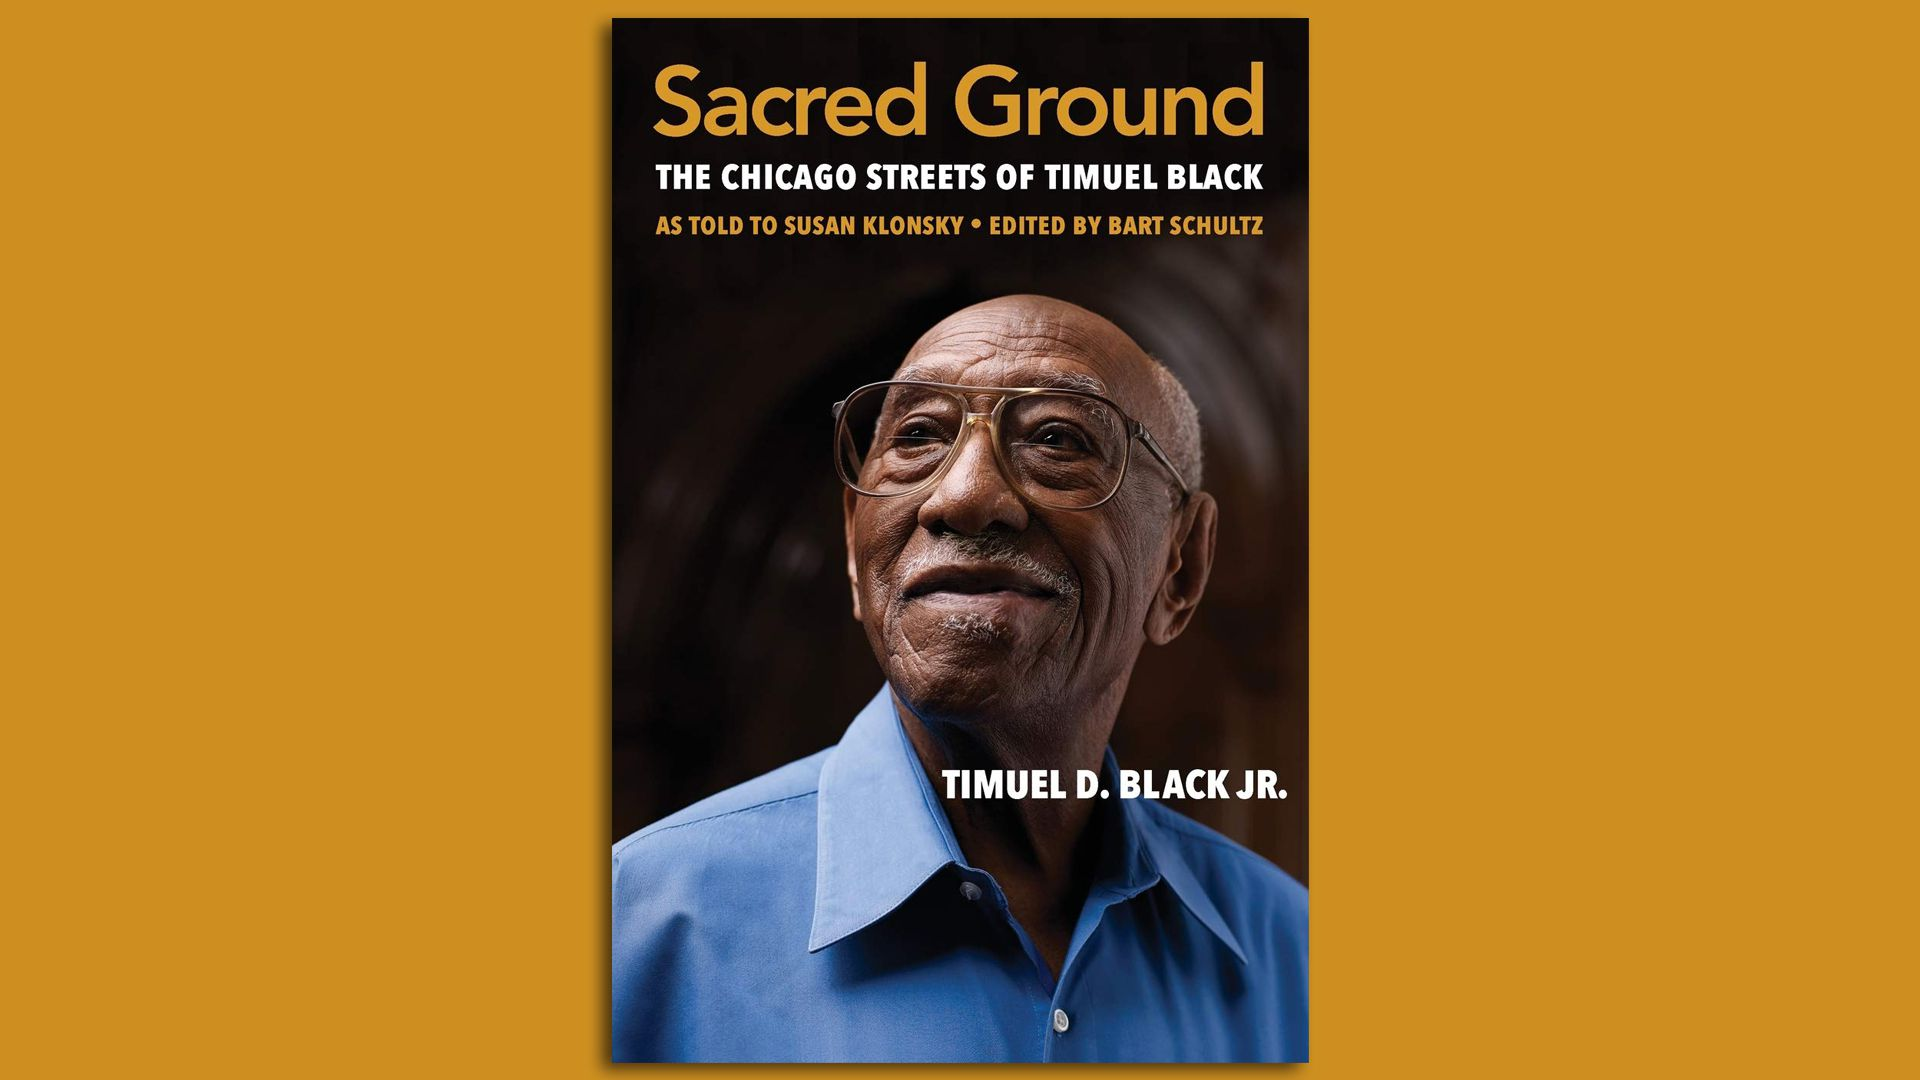 The book with Timuel Black on the cover.